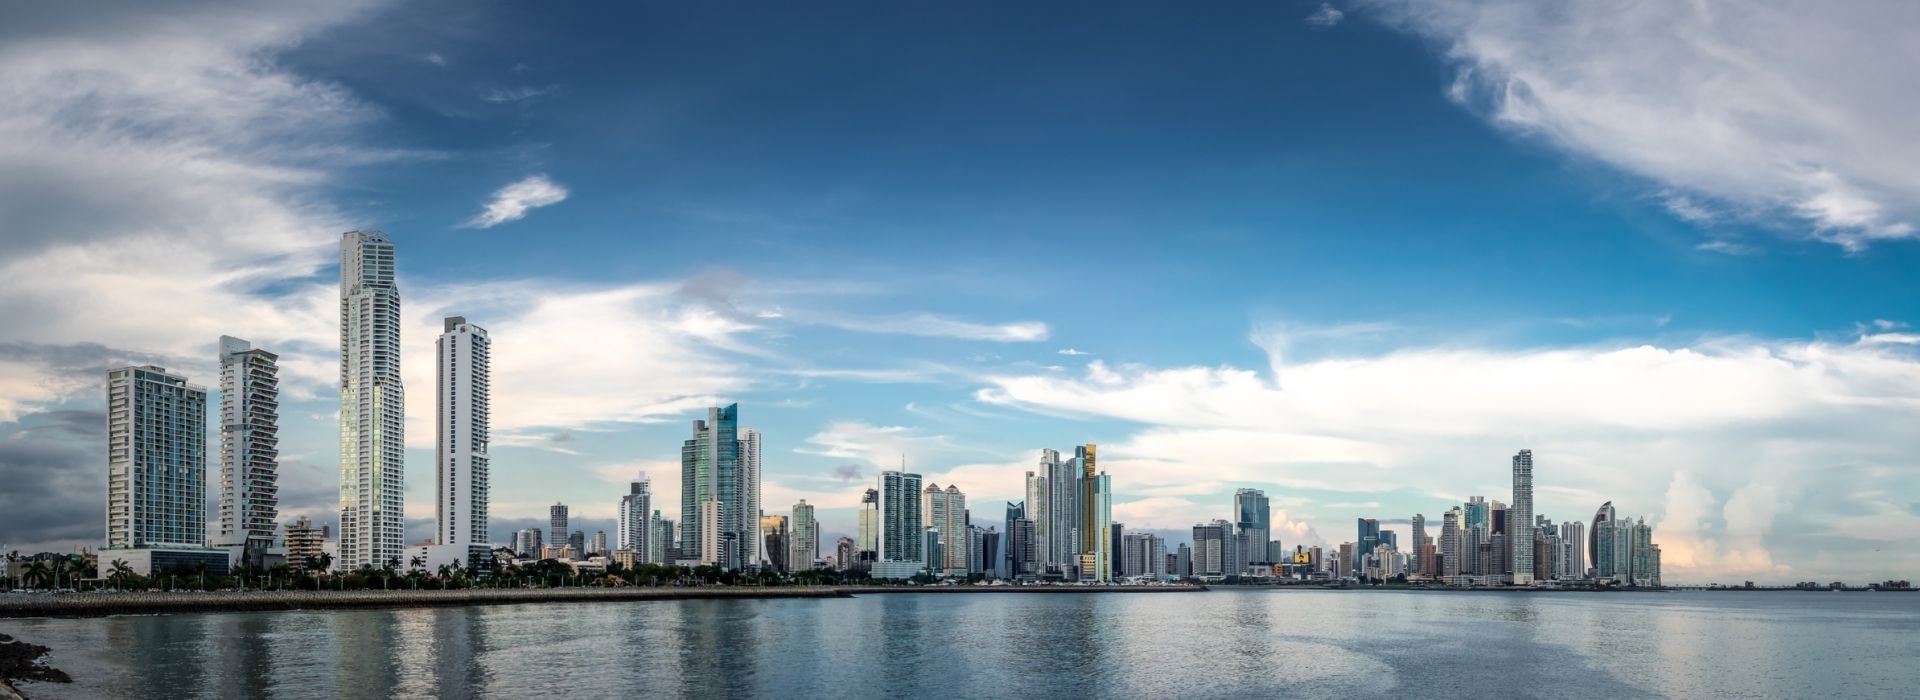 Panama City Tours